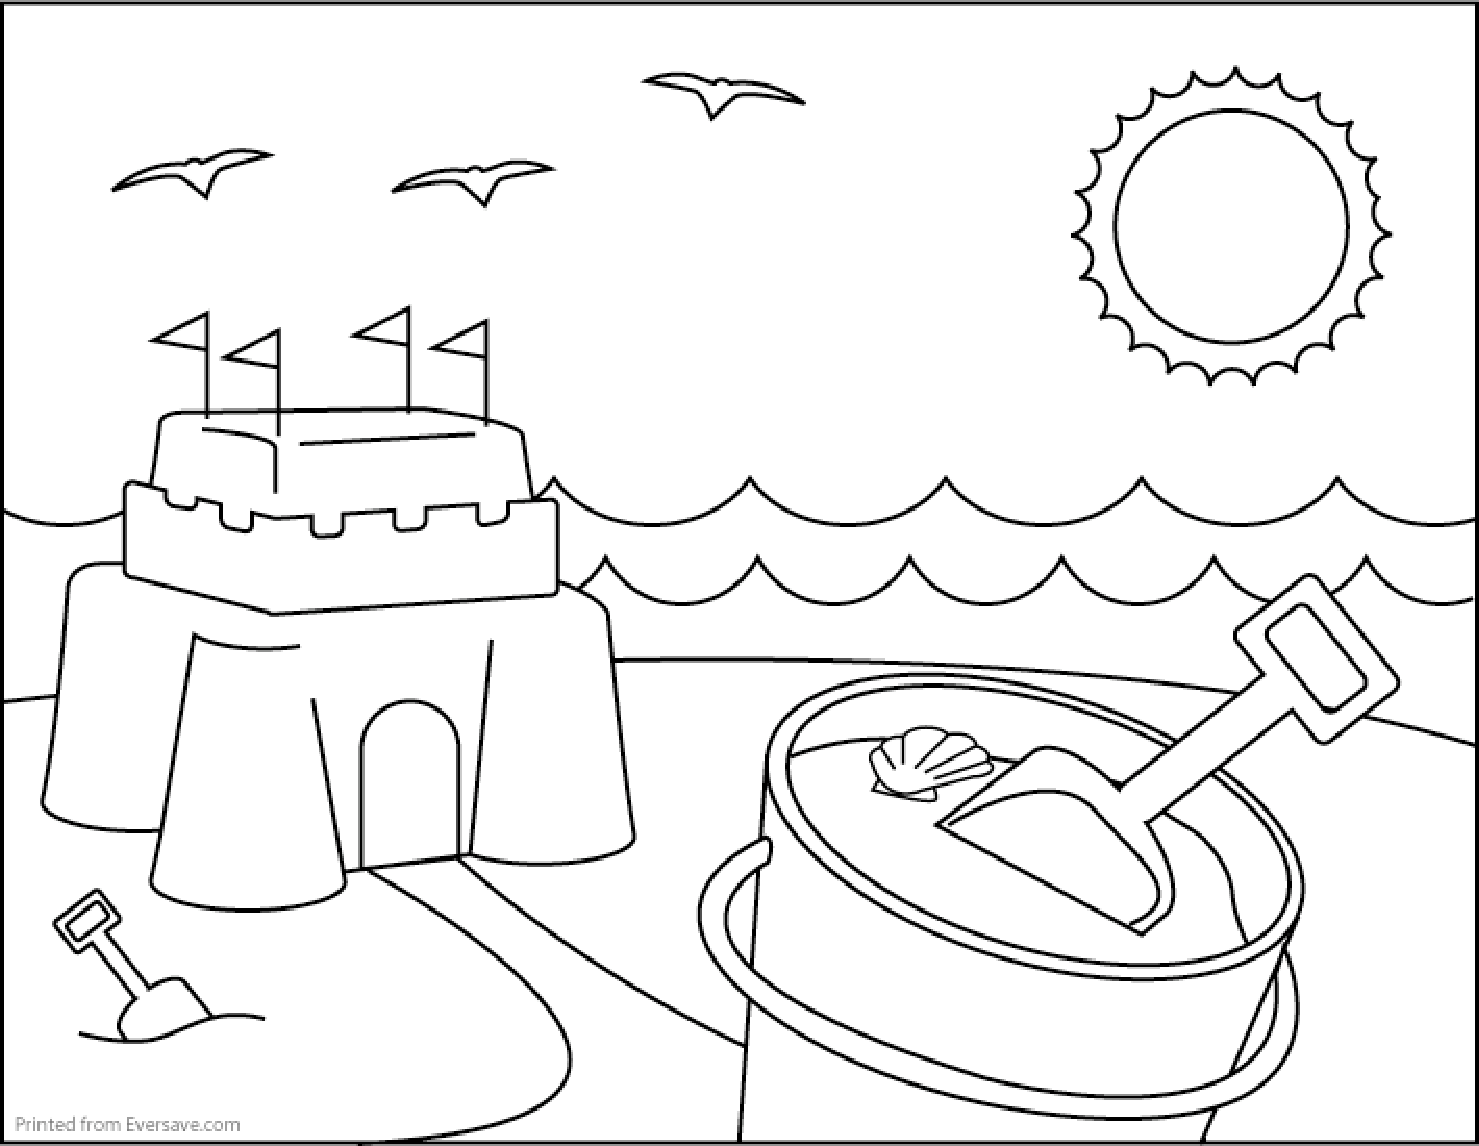 summer coloring sheets summer coloring pages for kids print them all for free coloring sheets summer